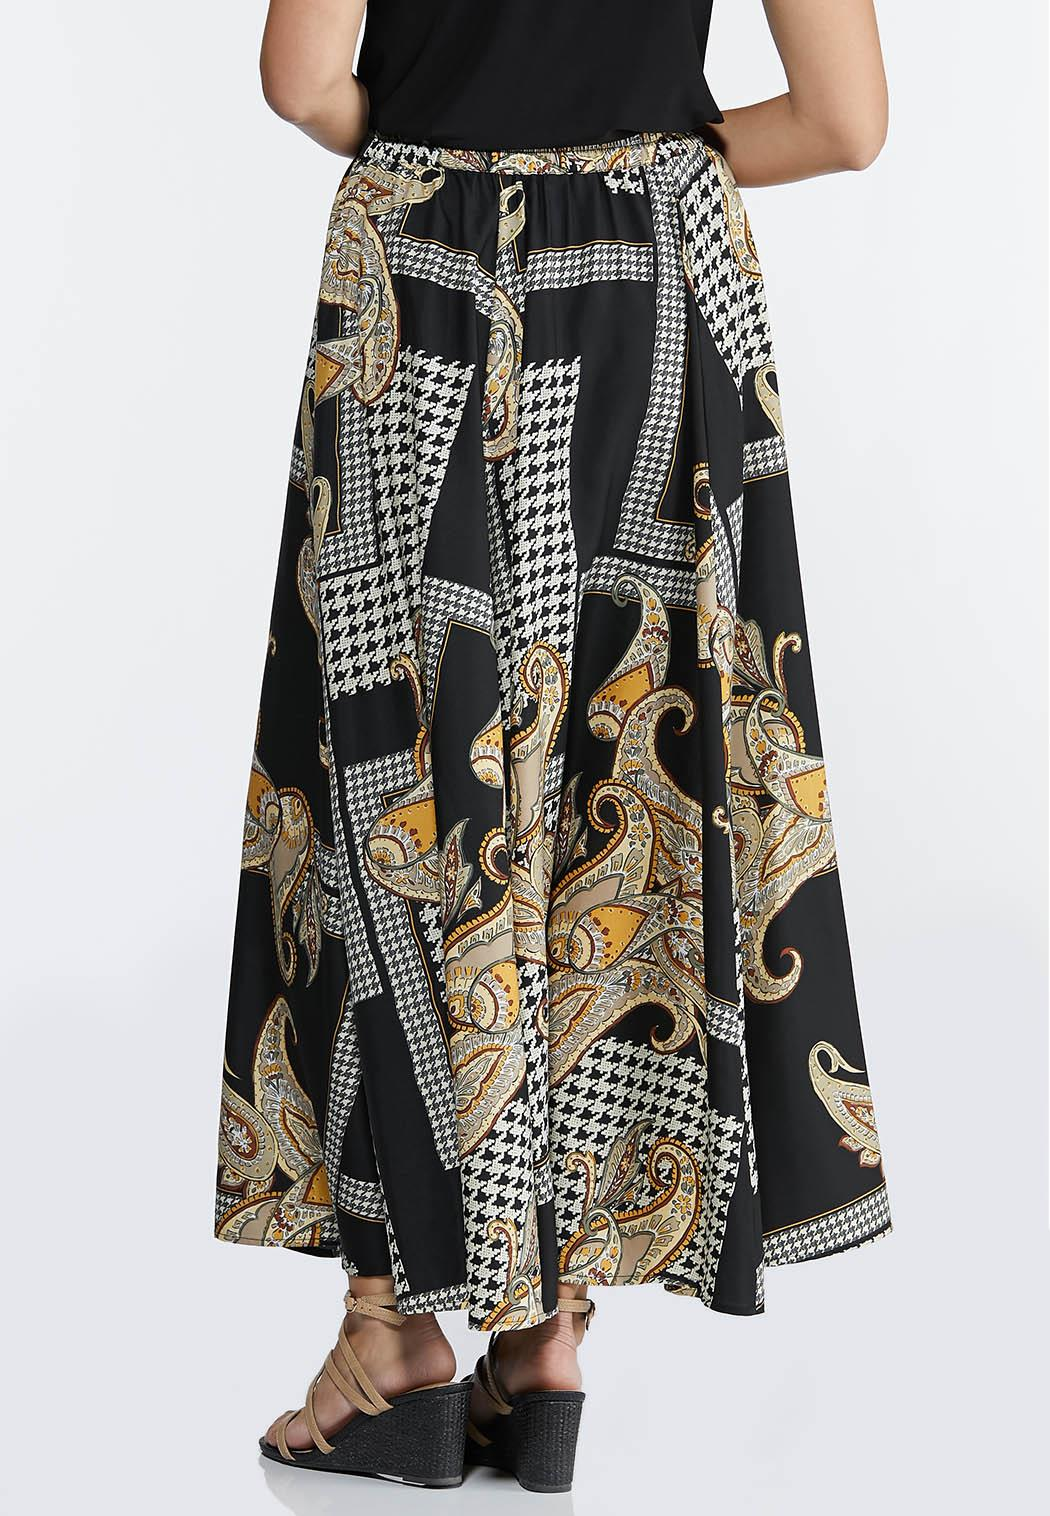 Plus Size Status Houndstooth Maxi Skirt (Item #44303810)